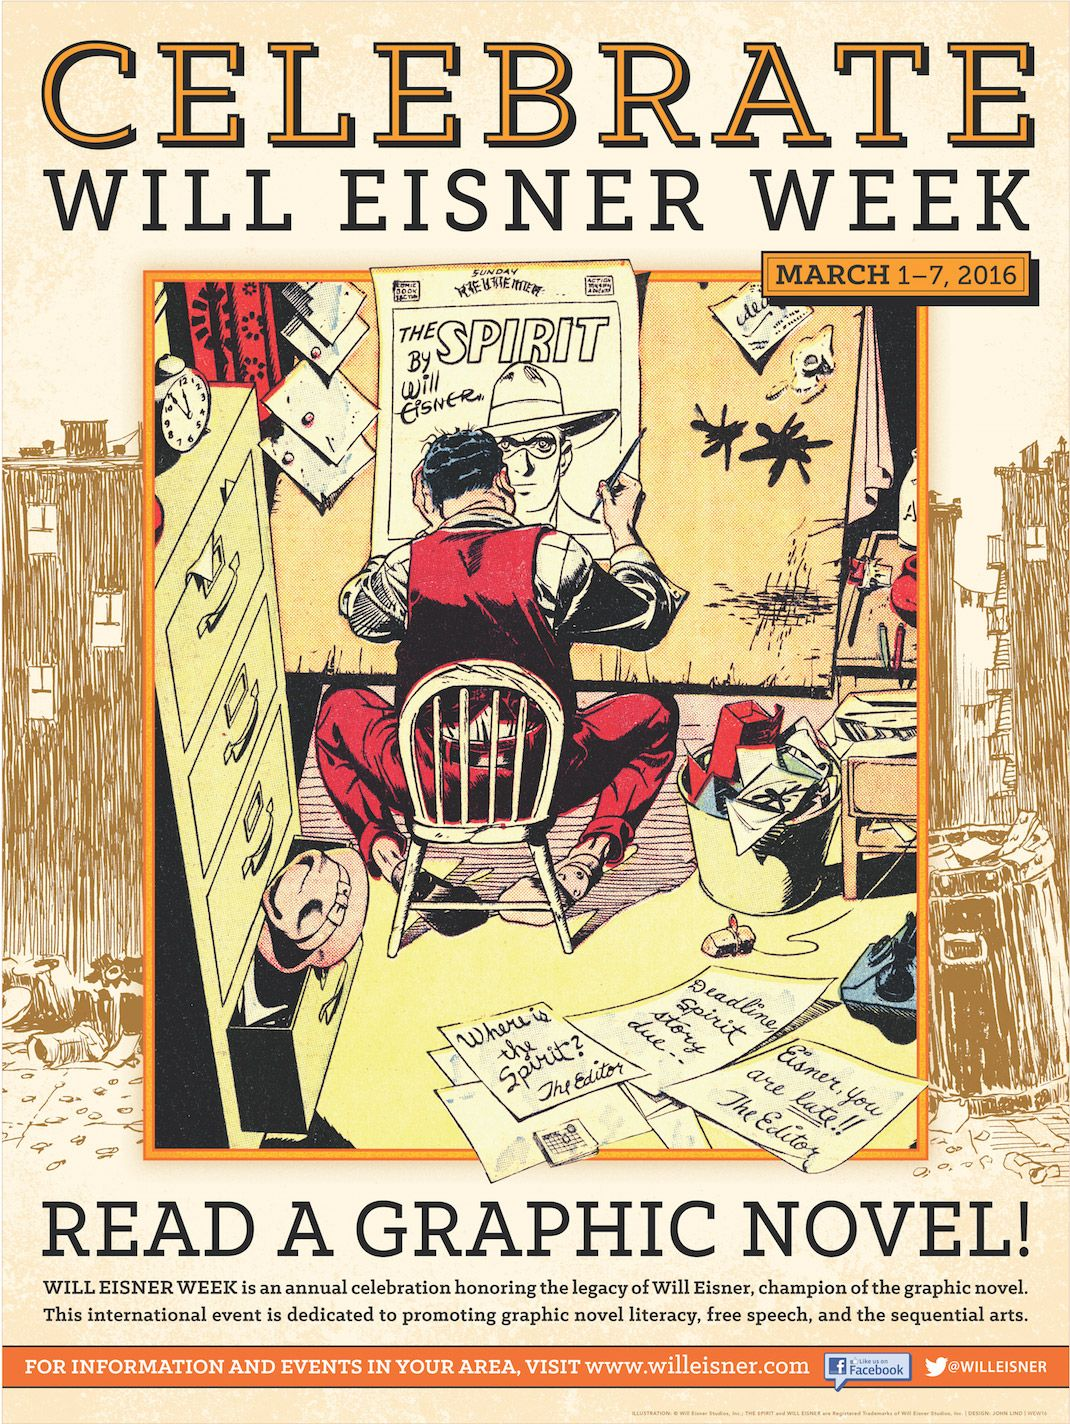 Read a graphic novel during Will Eisner Week.